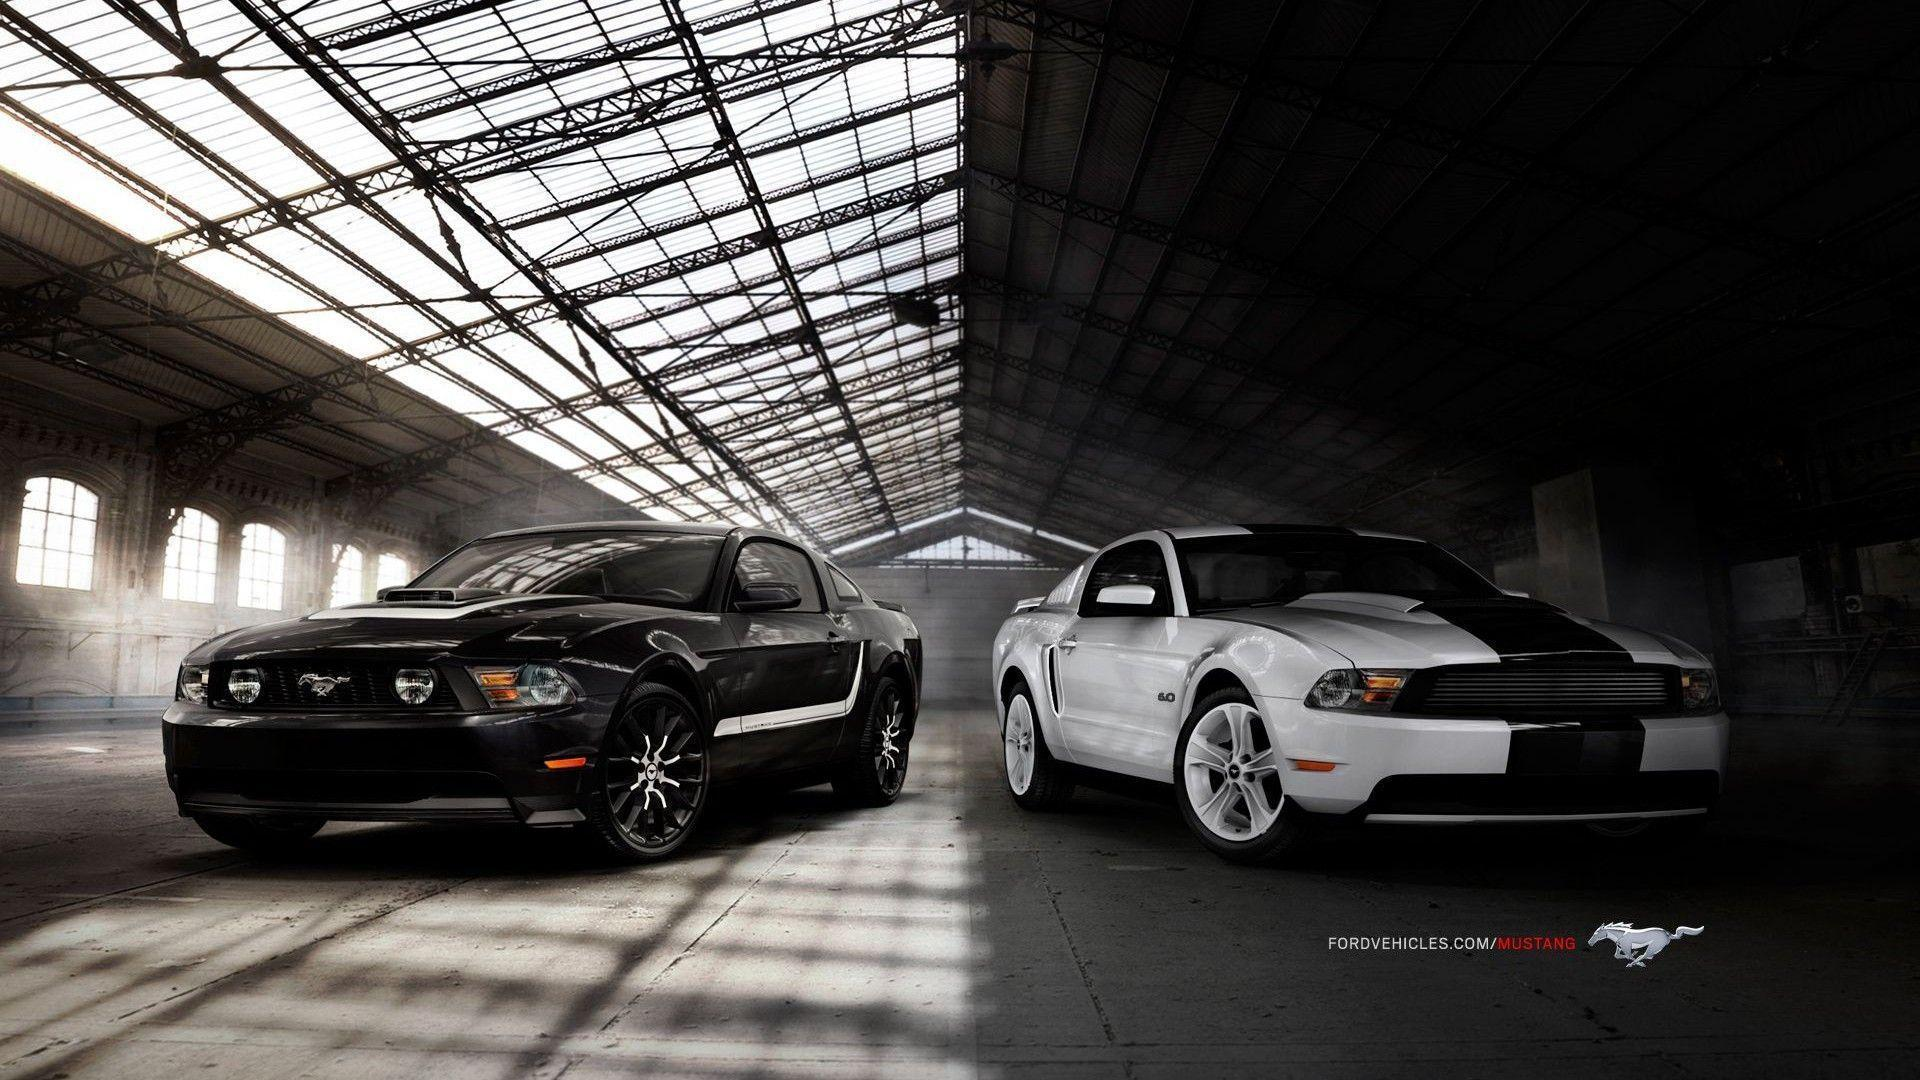 Ford mustang gt black white wallpaper free download wallpaper